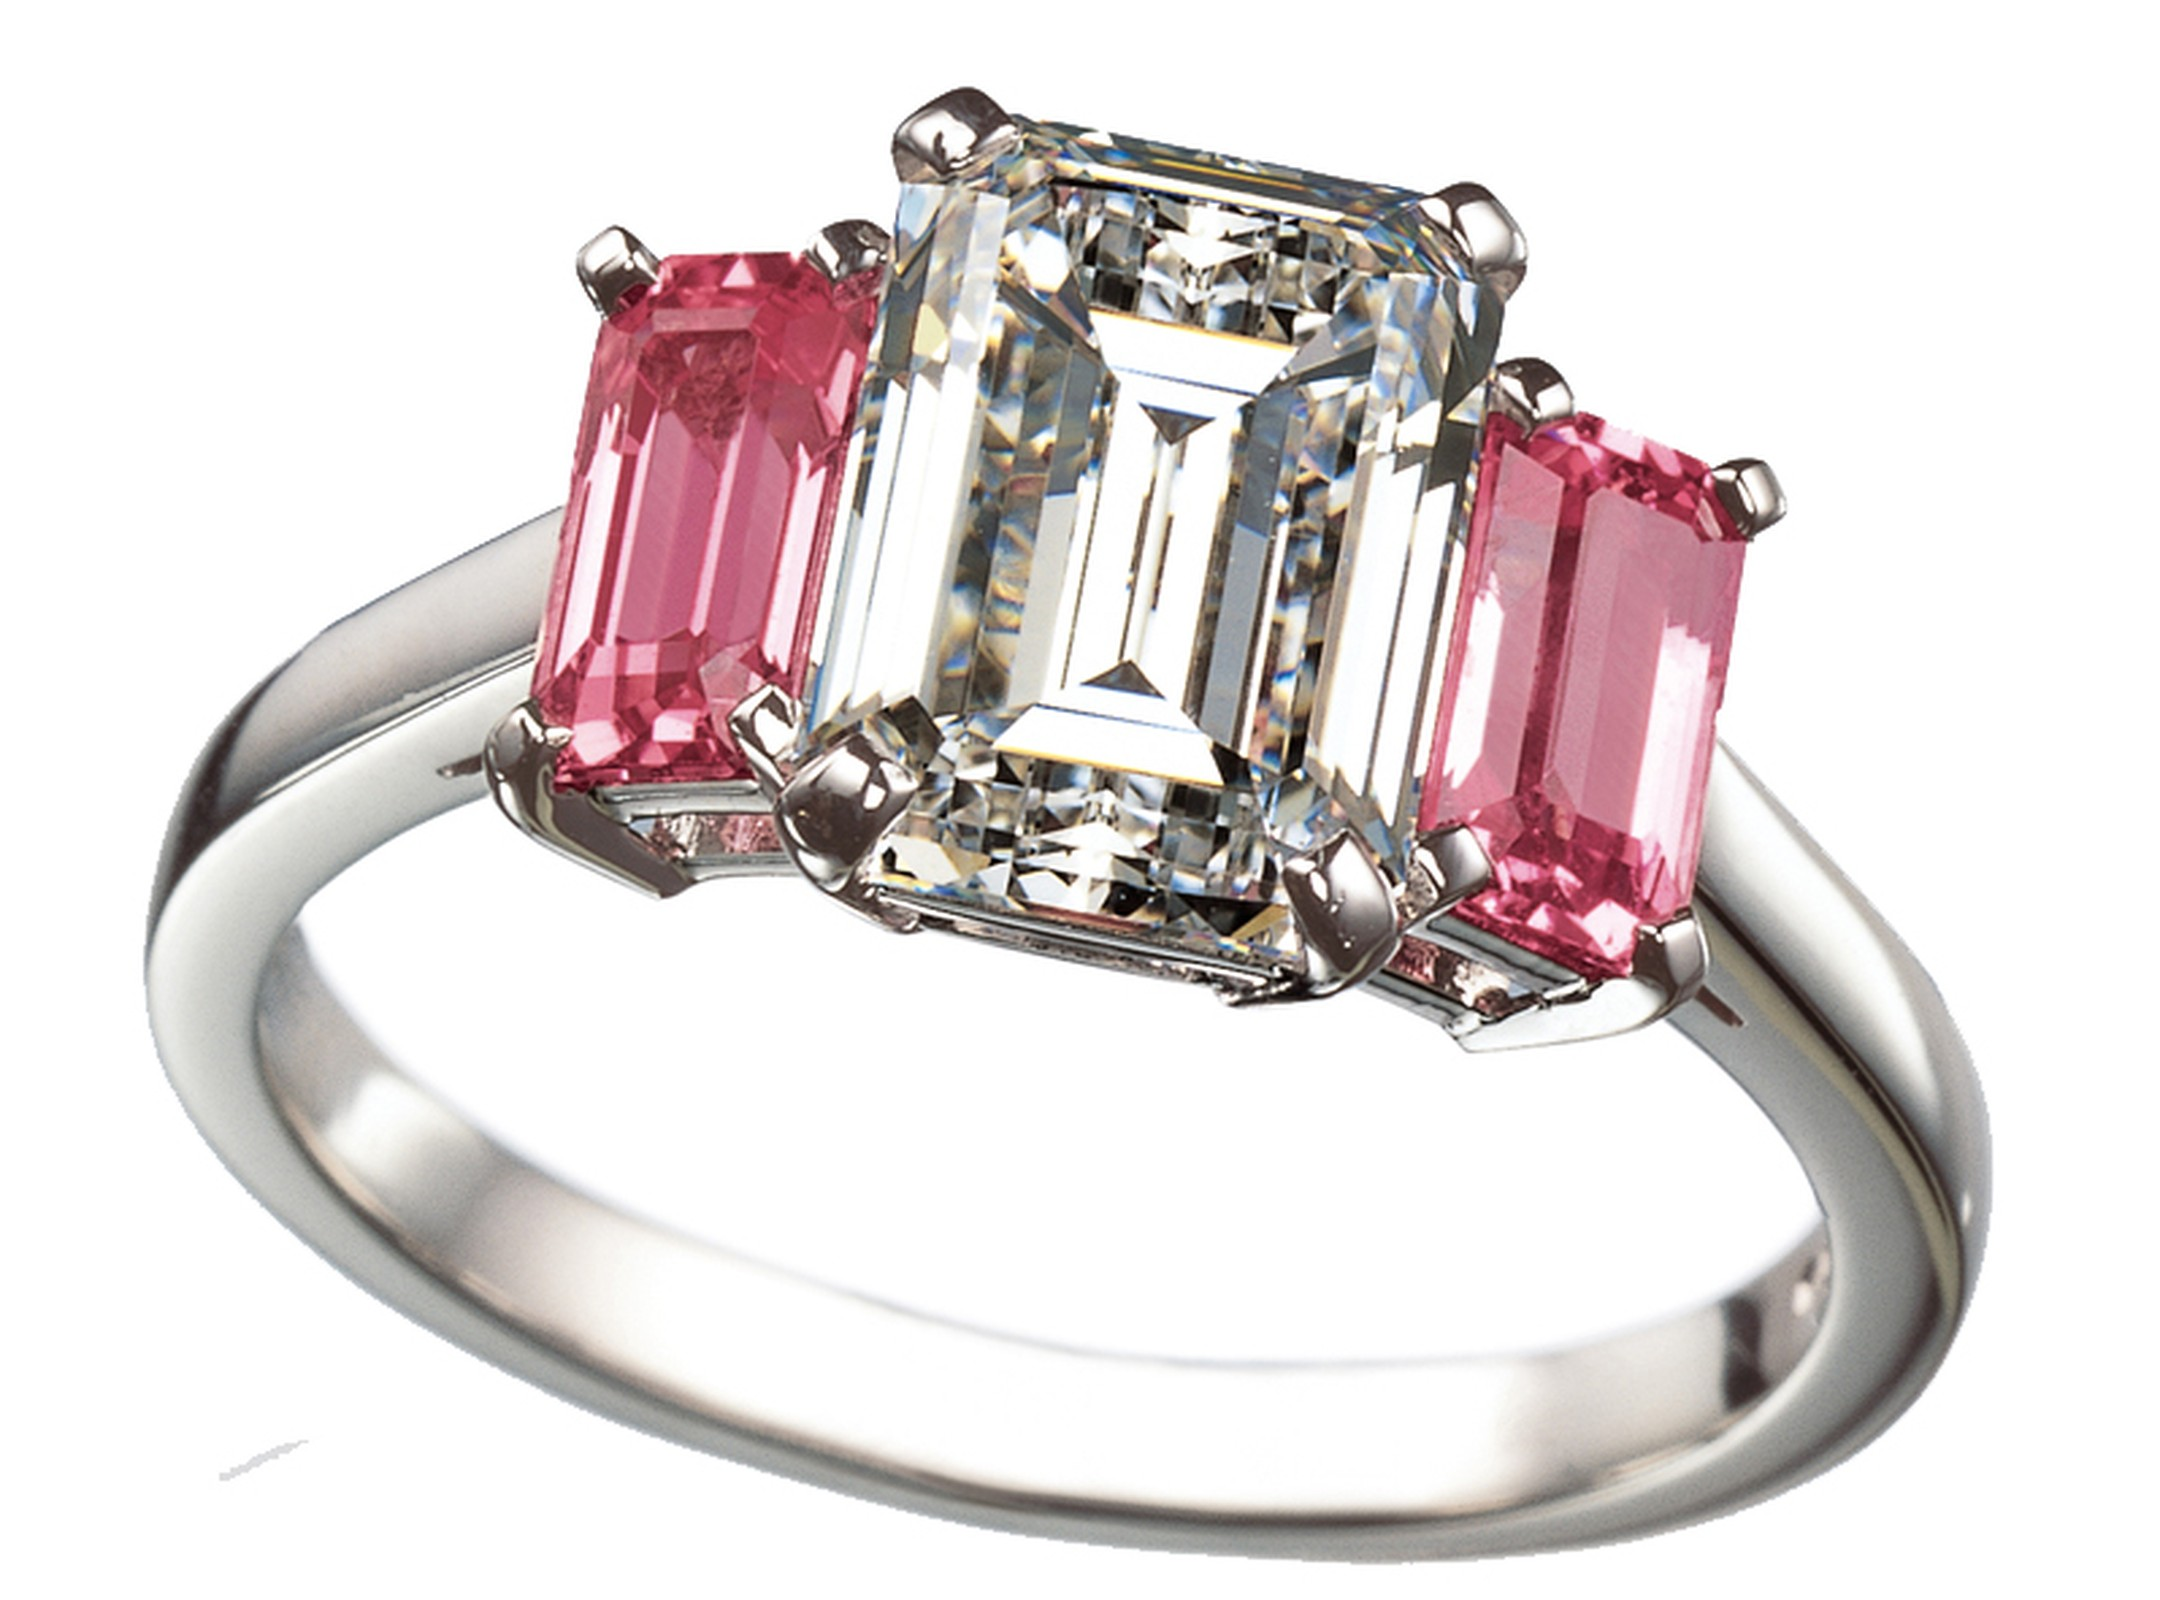 Ritz Fine Jewellery emerald-cut three stone engagement ring featuring one white diamond and two pink diamonds.